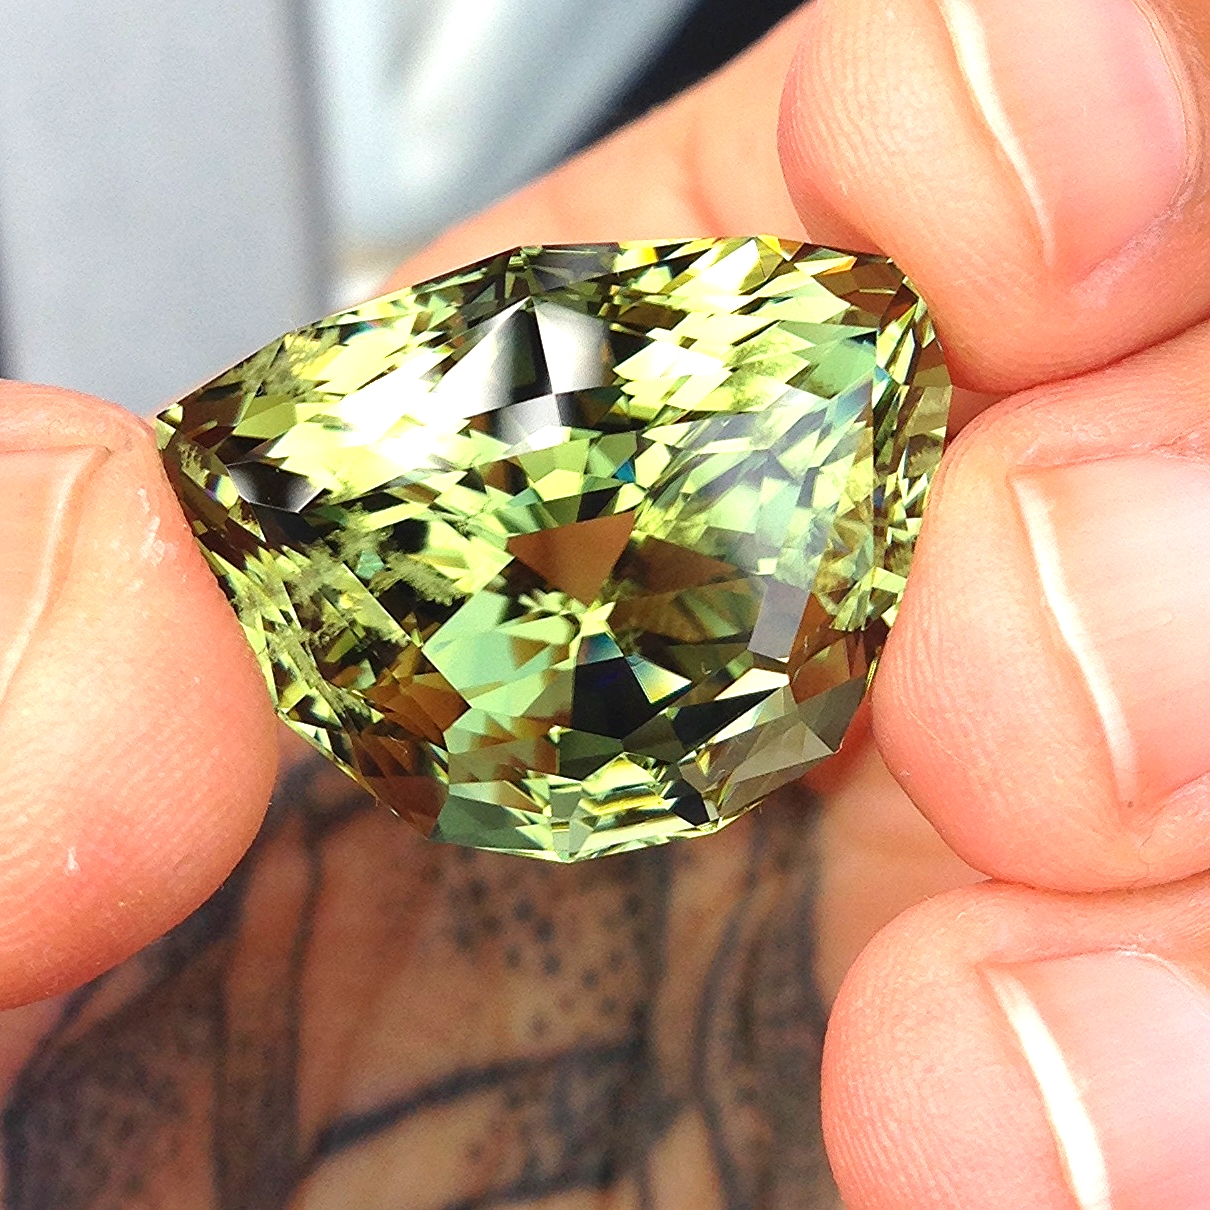 45 carat tourmaline form Mozambique, pulled from a 300 carat crystal.